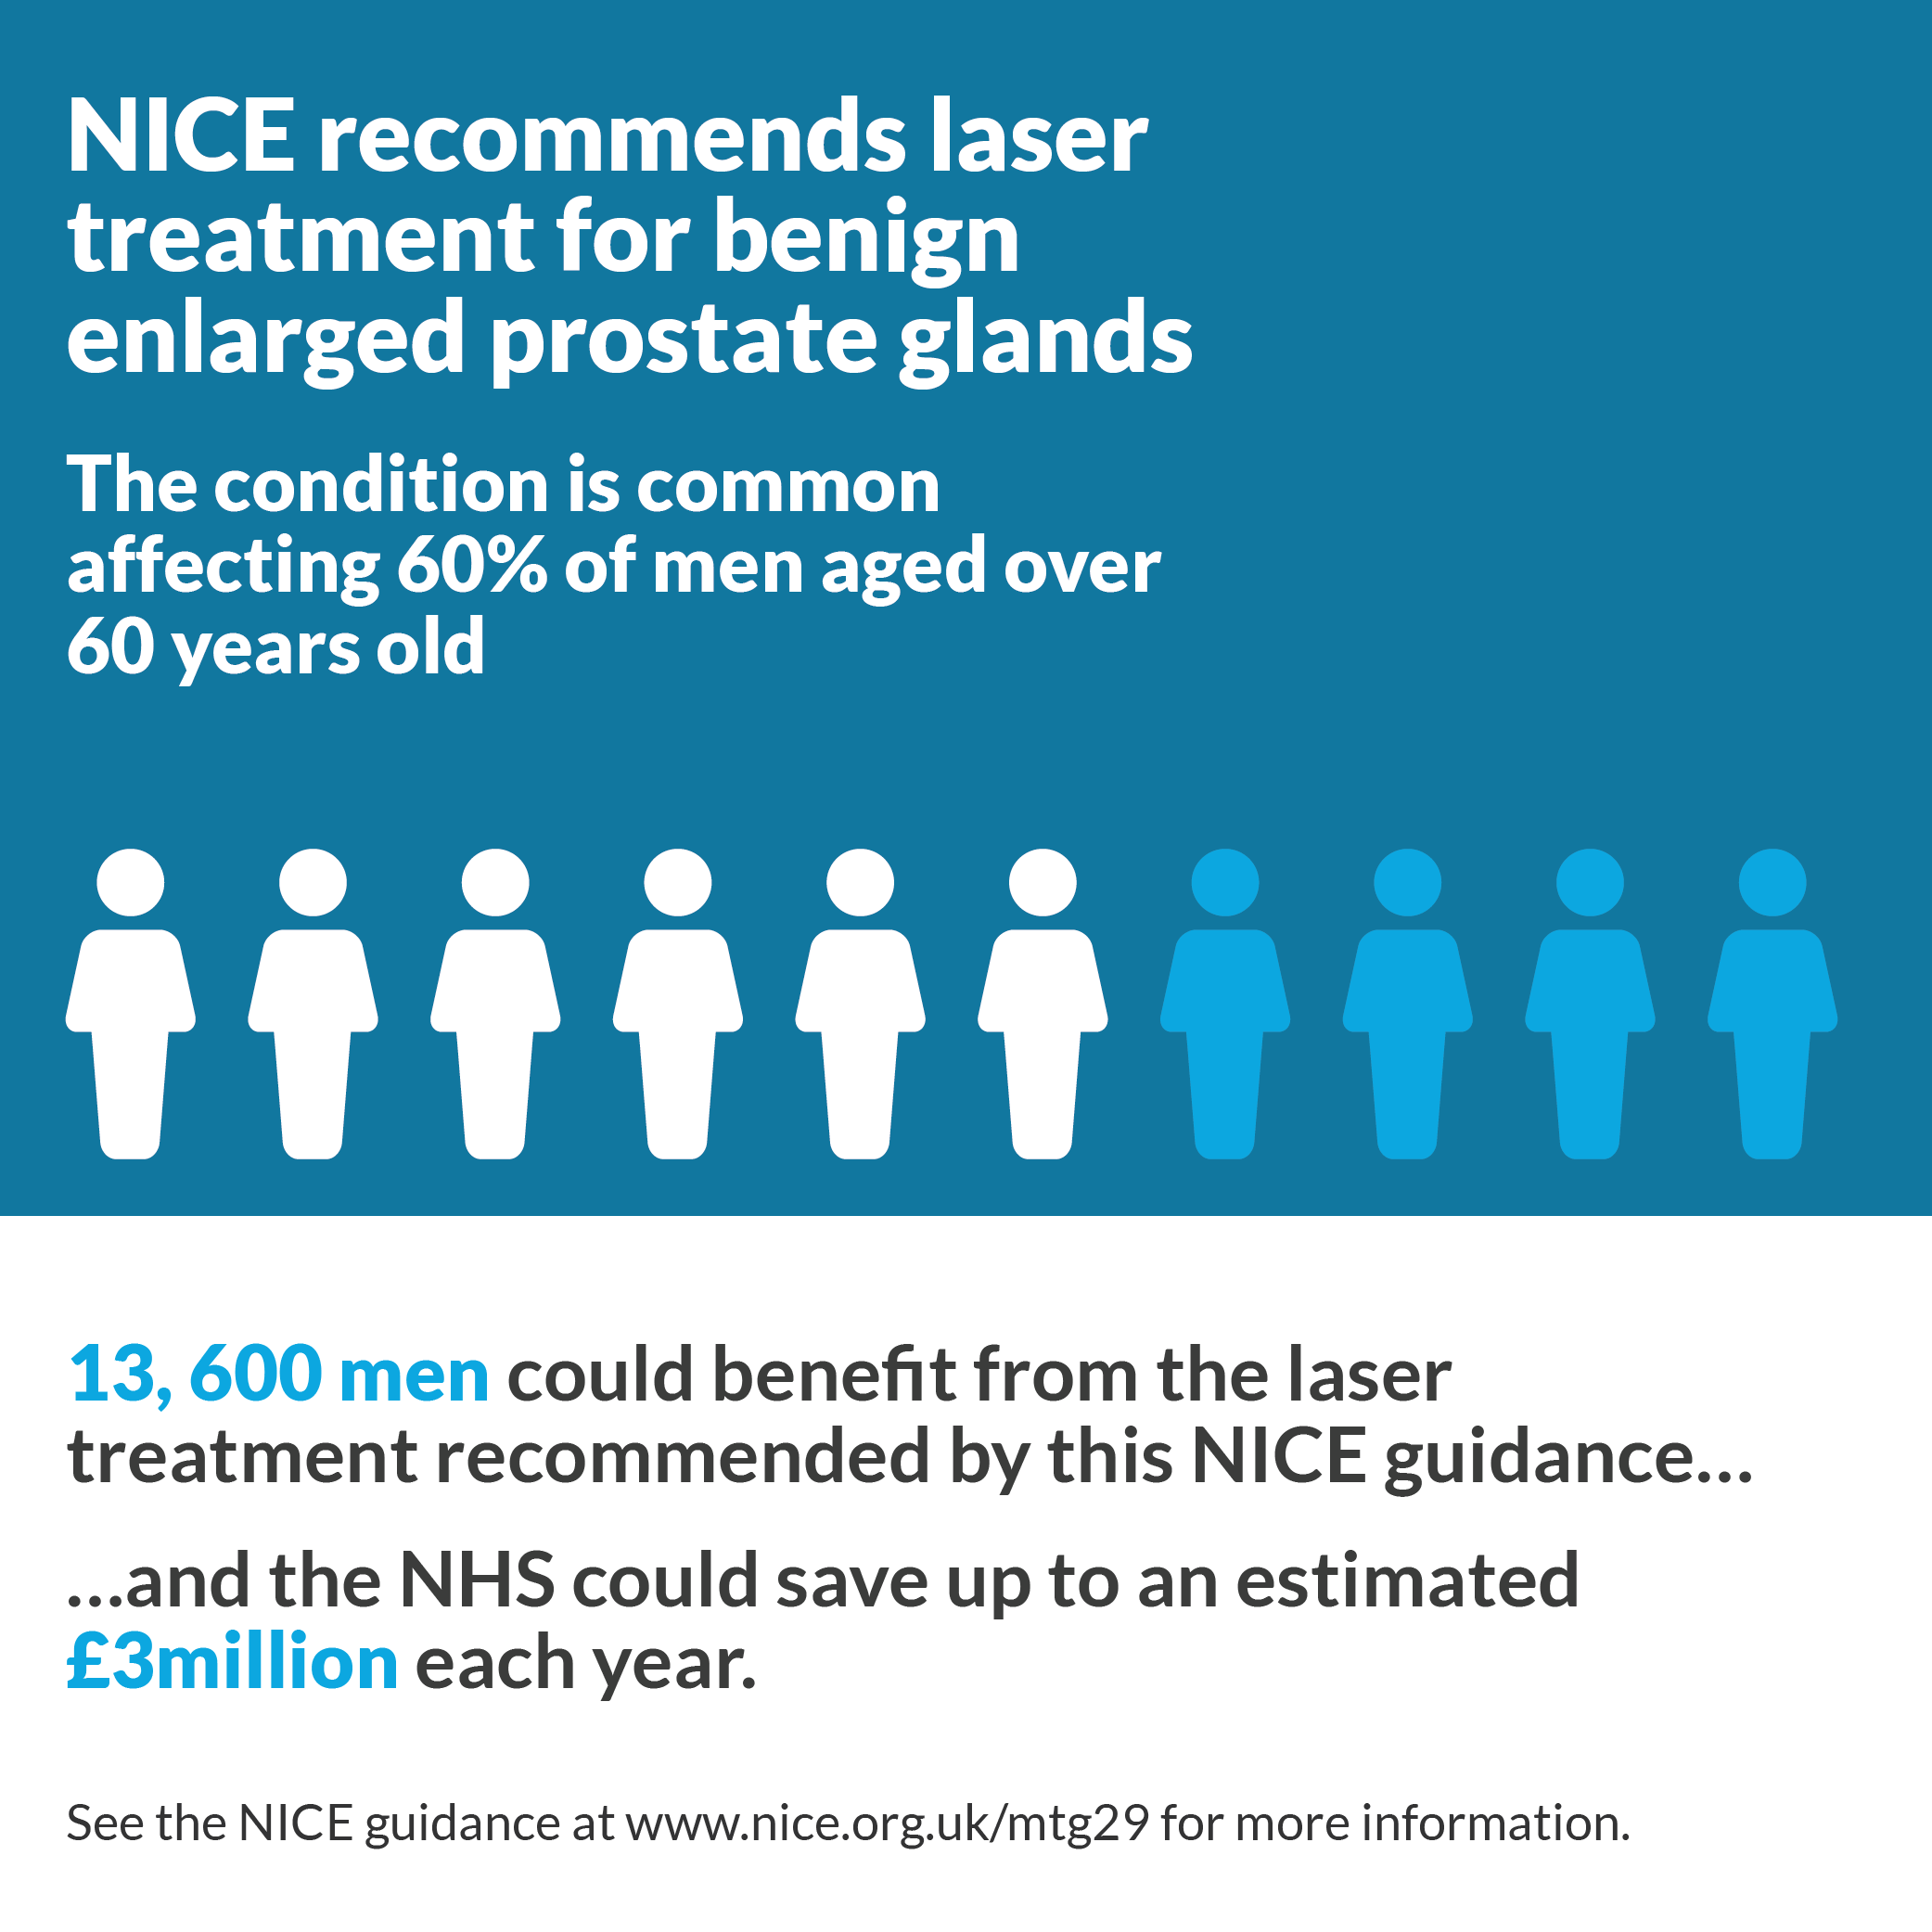 NICE recommends laser treatment for benign enlarged prostate glands.